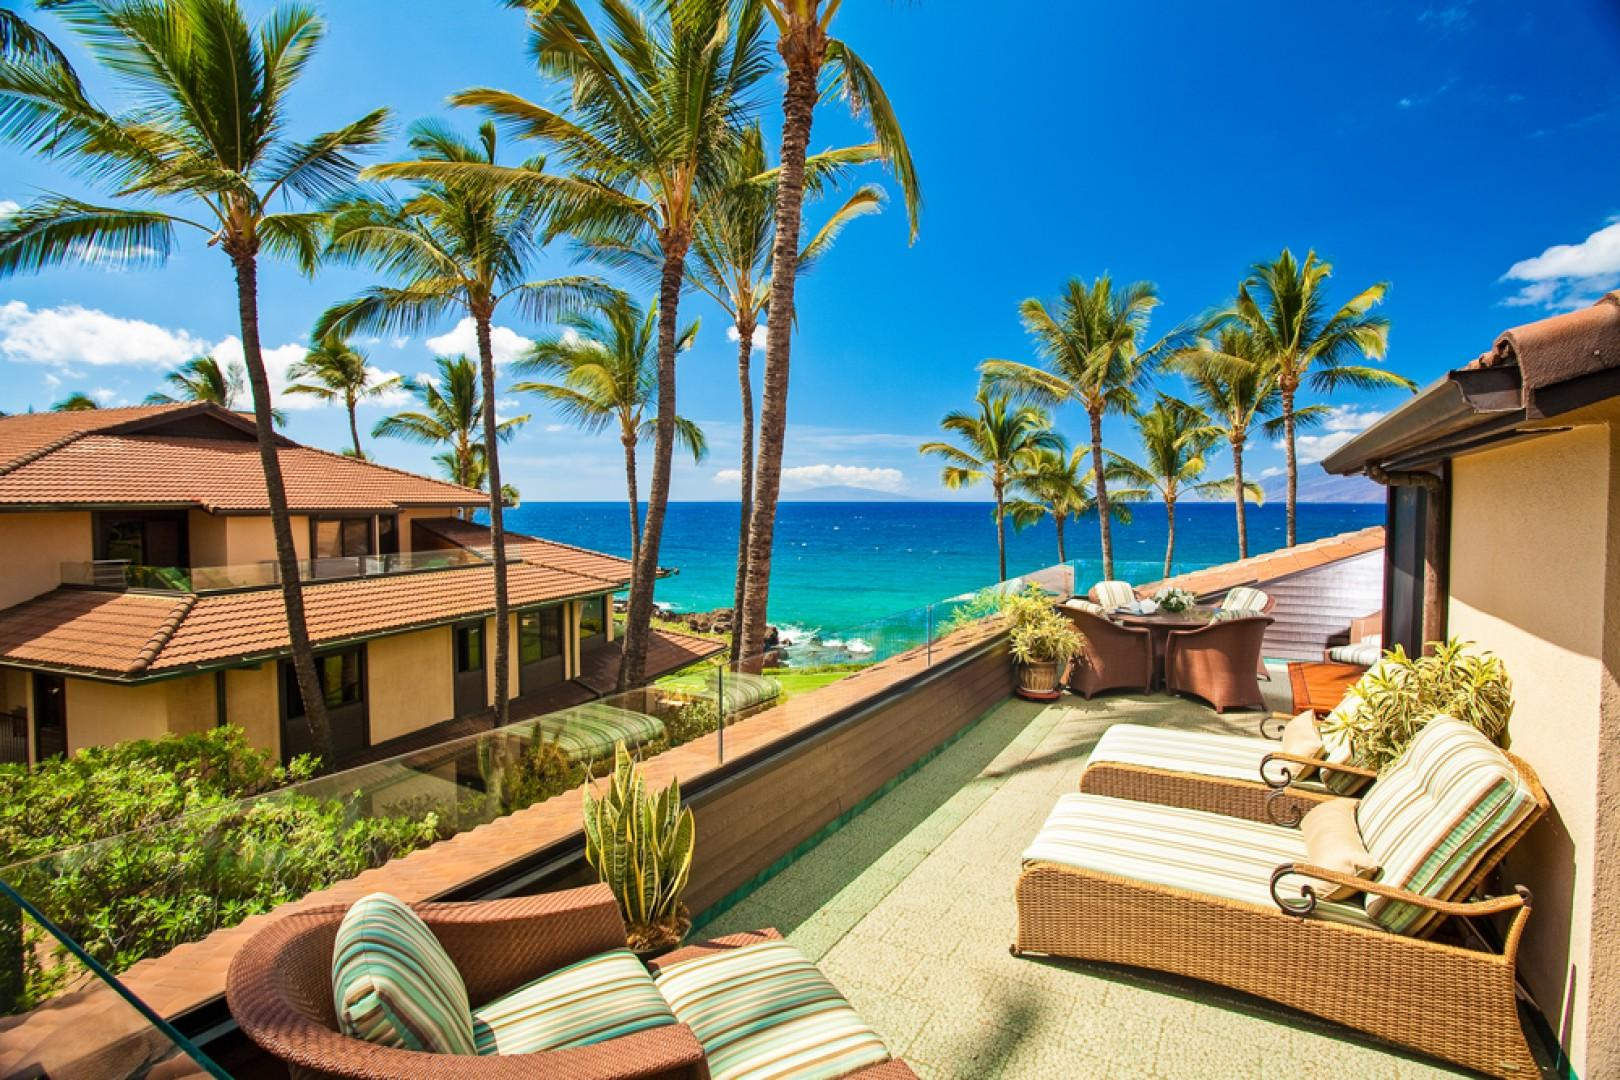 One of Two Large Sunny Terraces at Makena Surf E301 Sunny Surf - Overlooking both the Ocean and the Swimming Pool.